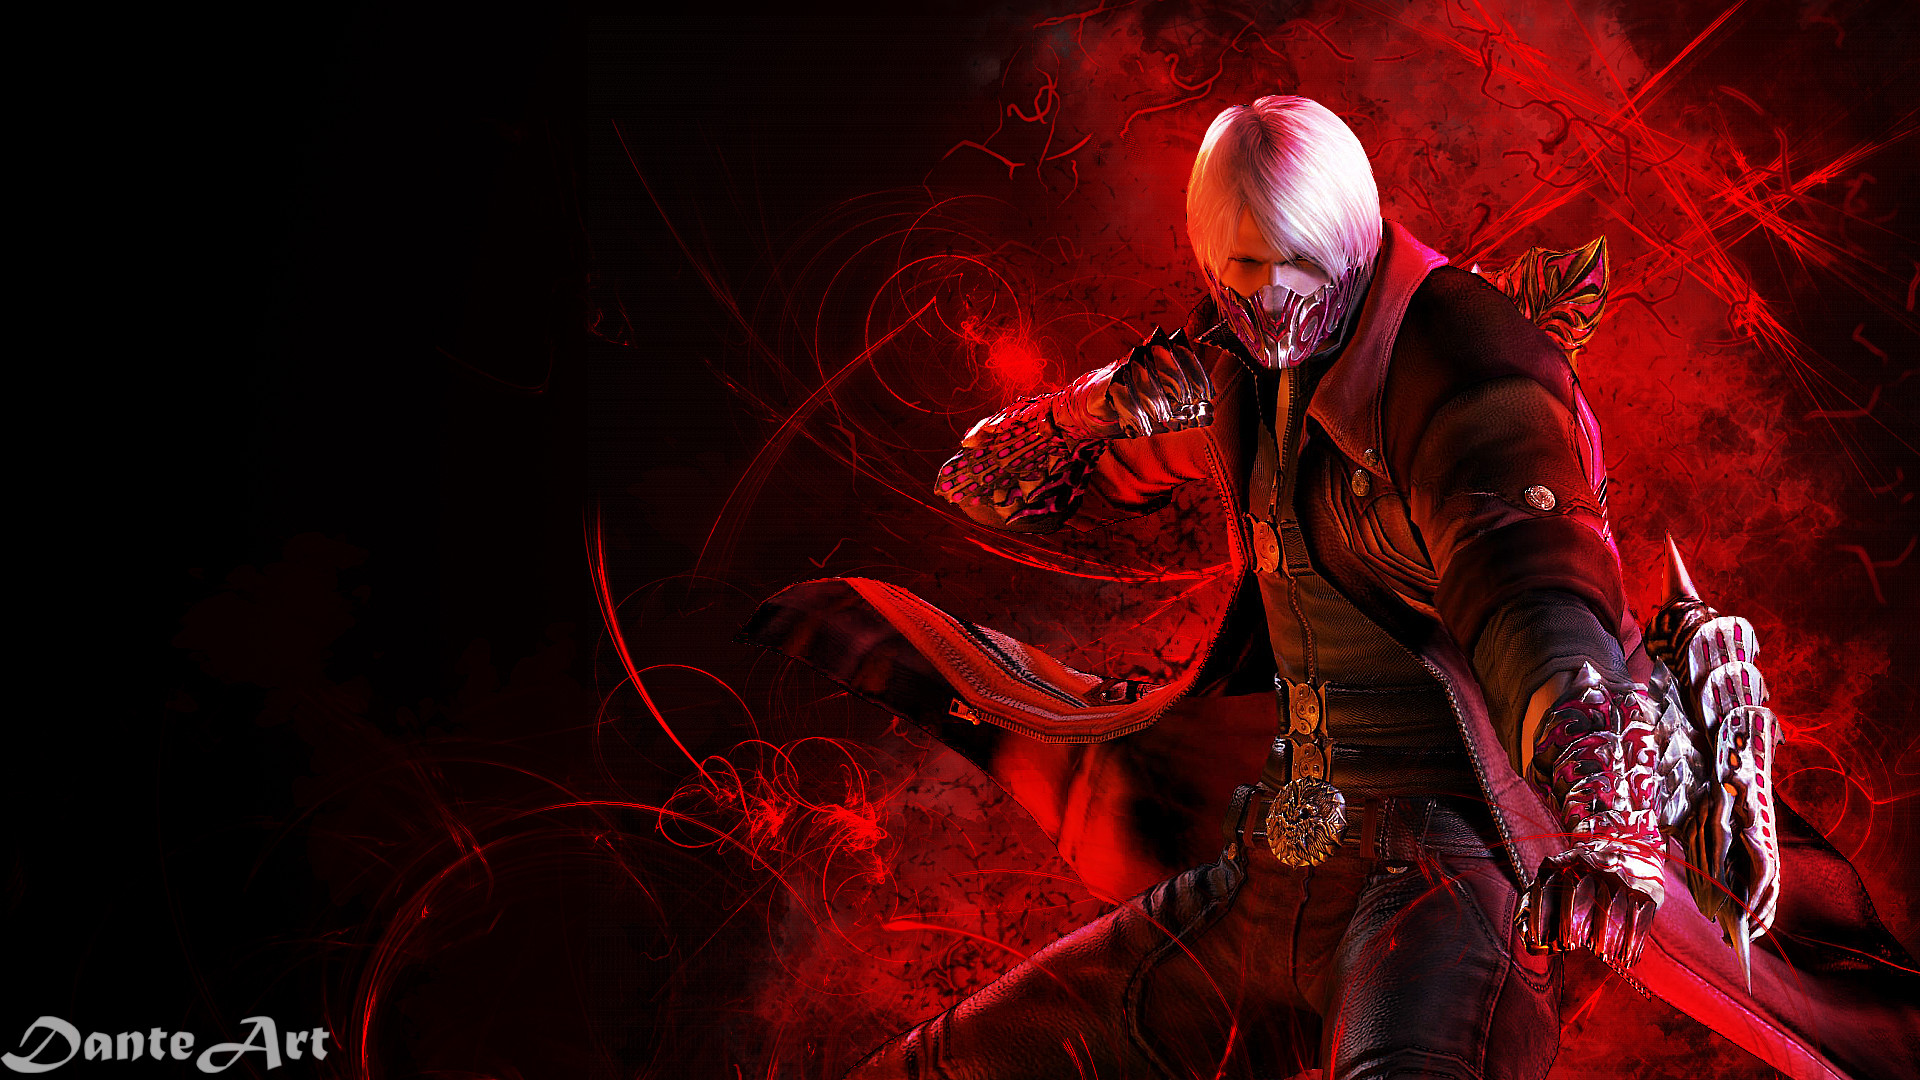 Vergil Yamato Sword Hd Wallpaper: Devil May Cry 3 Wallpaper (62+ Images